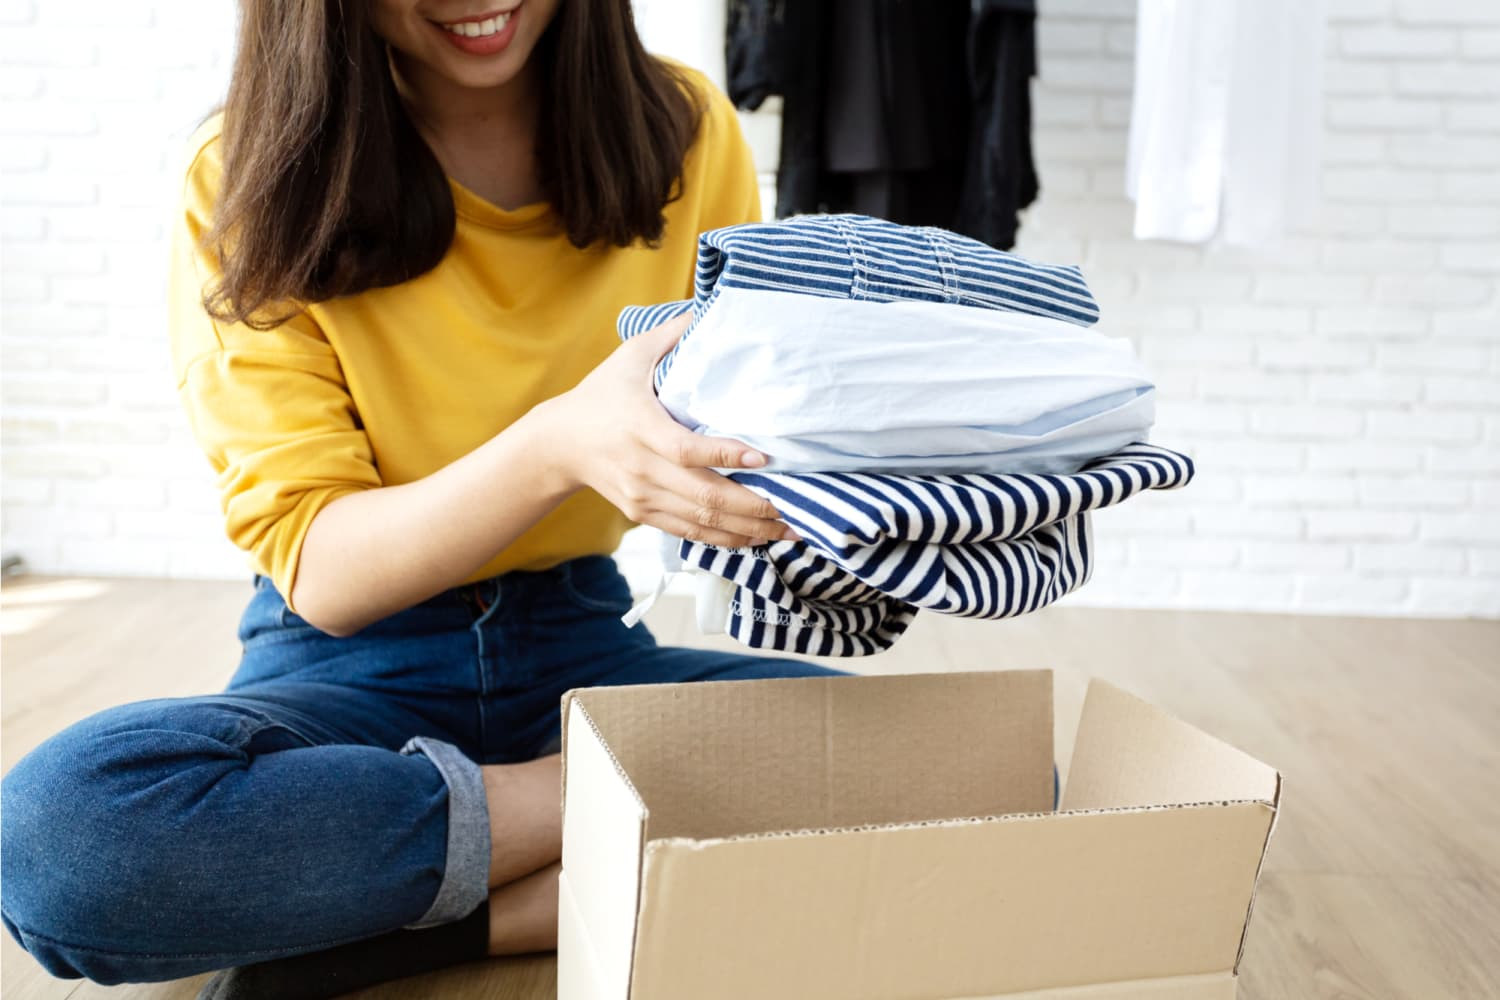 So You're Using Quarantine to Declutter. Here's What to Do With the Stuff